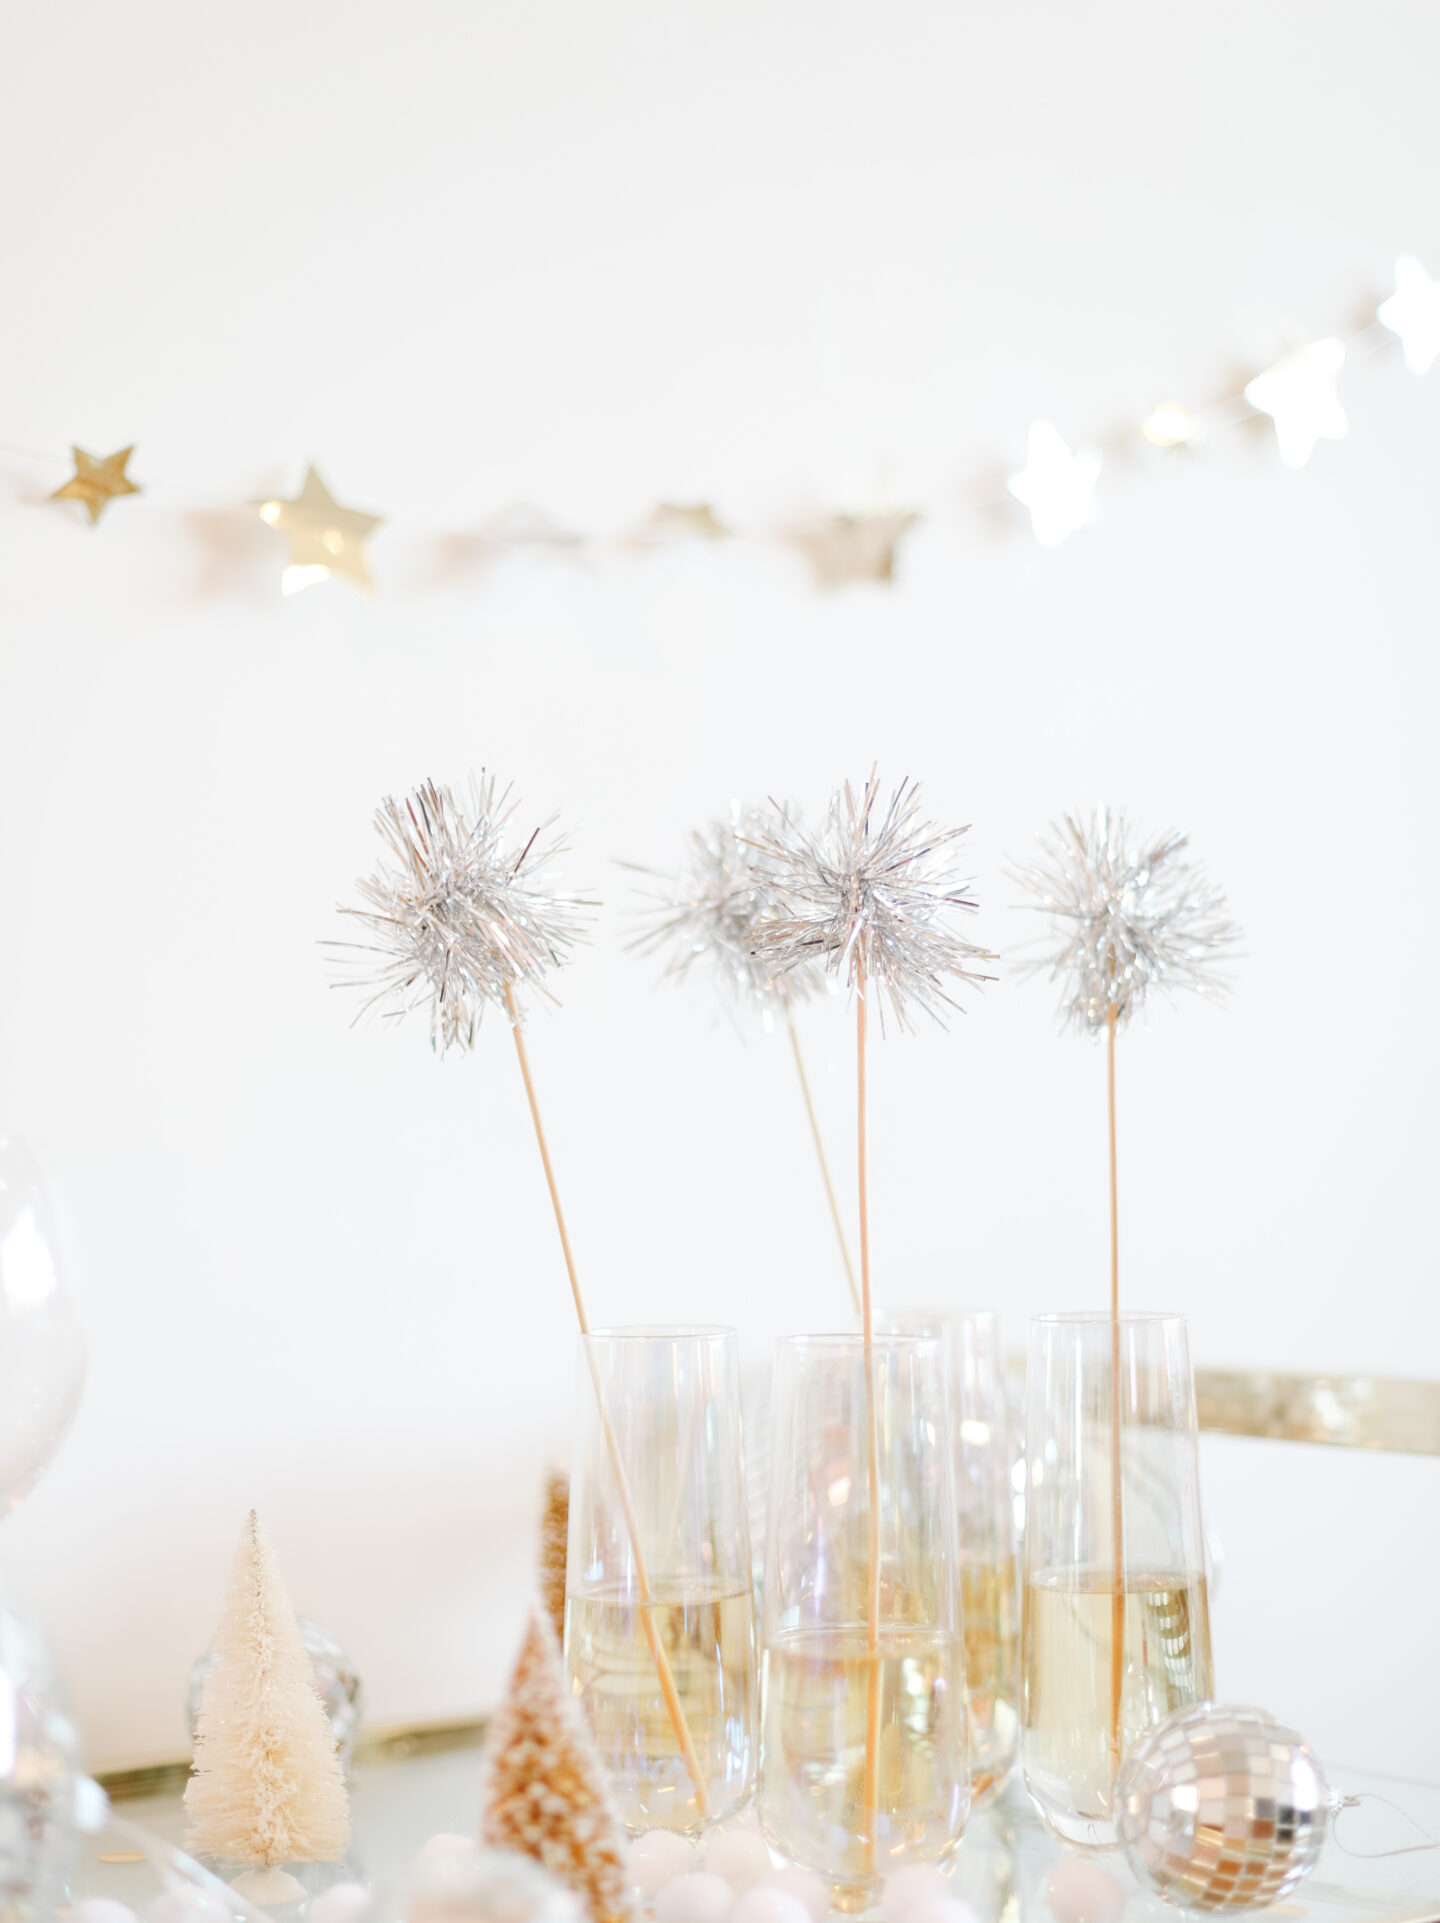 DIY Sparkly Sticks for Christmas